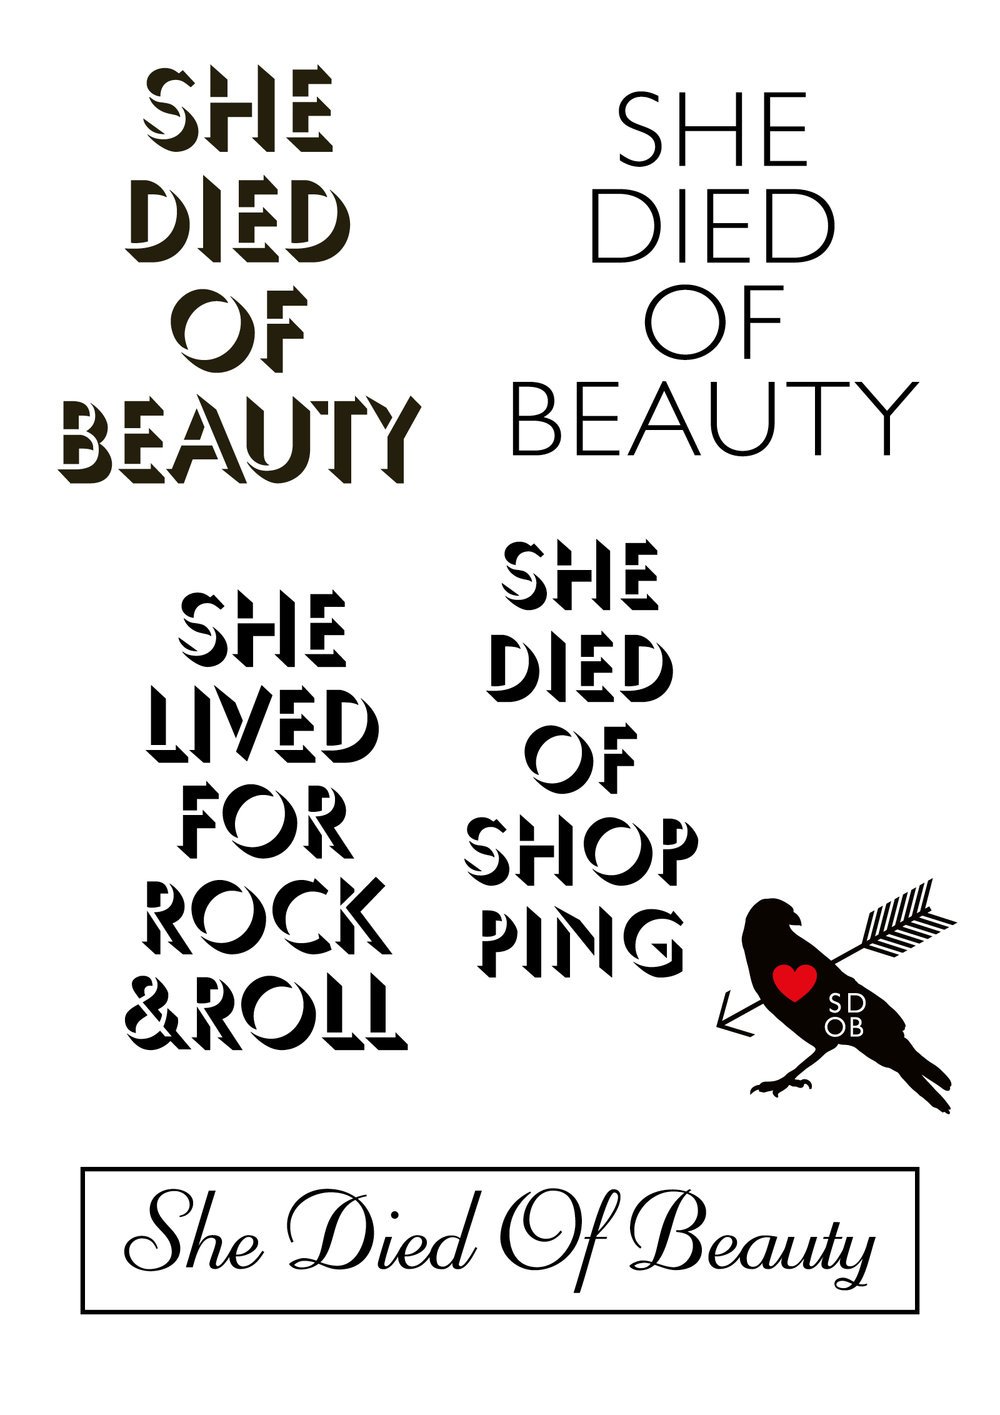 She Died Of Beauty   Art Direction   Design   By James-Lee Duffy